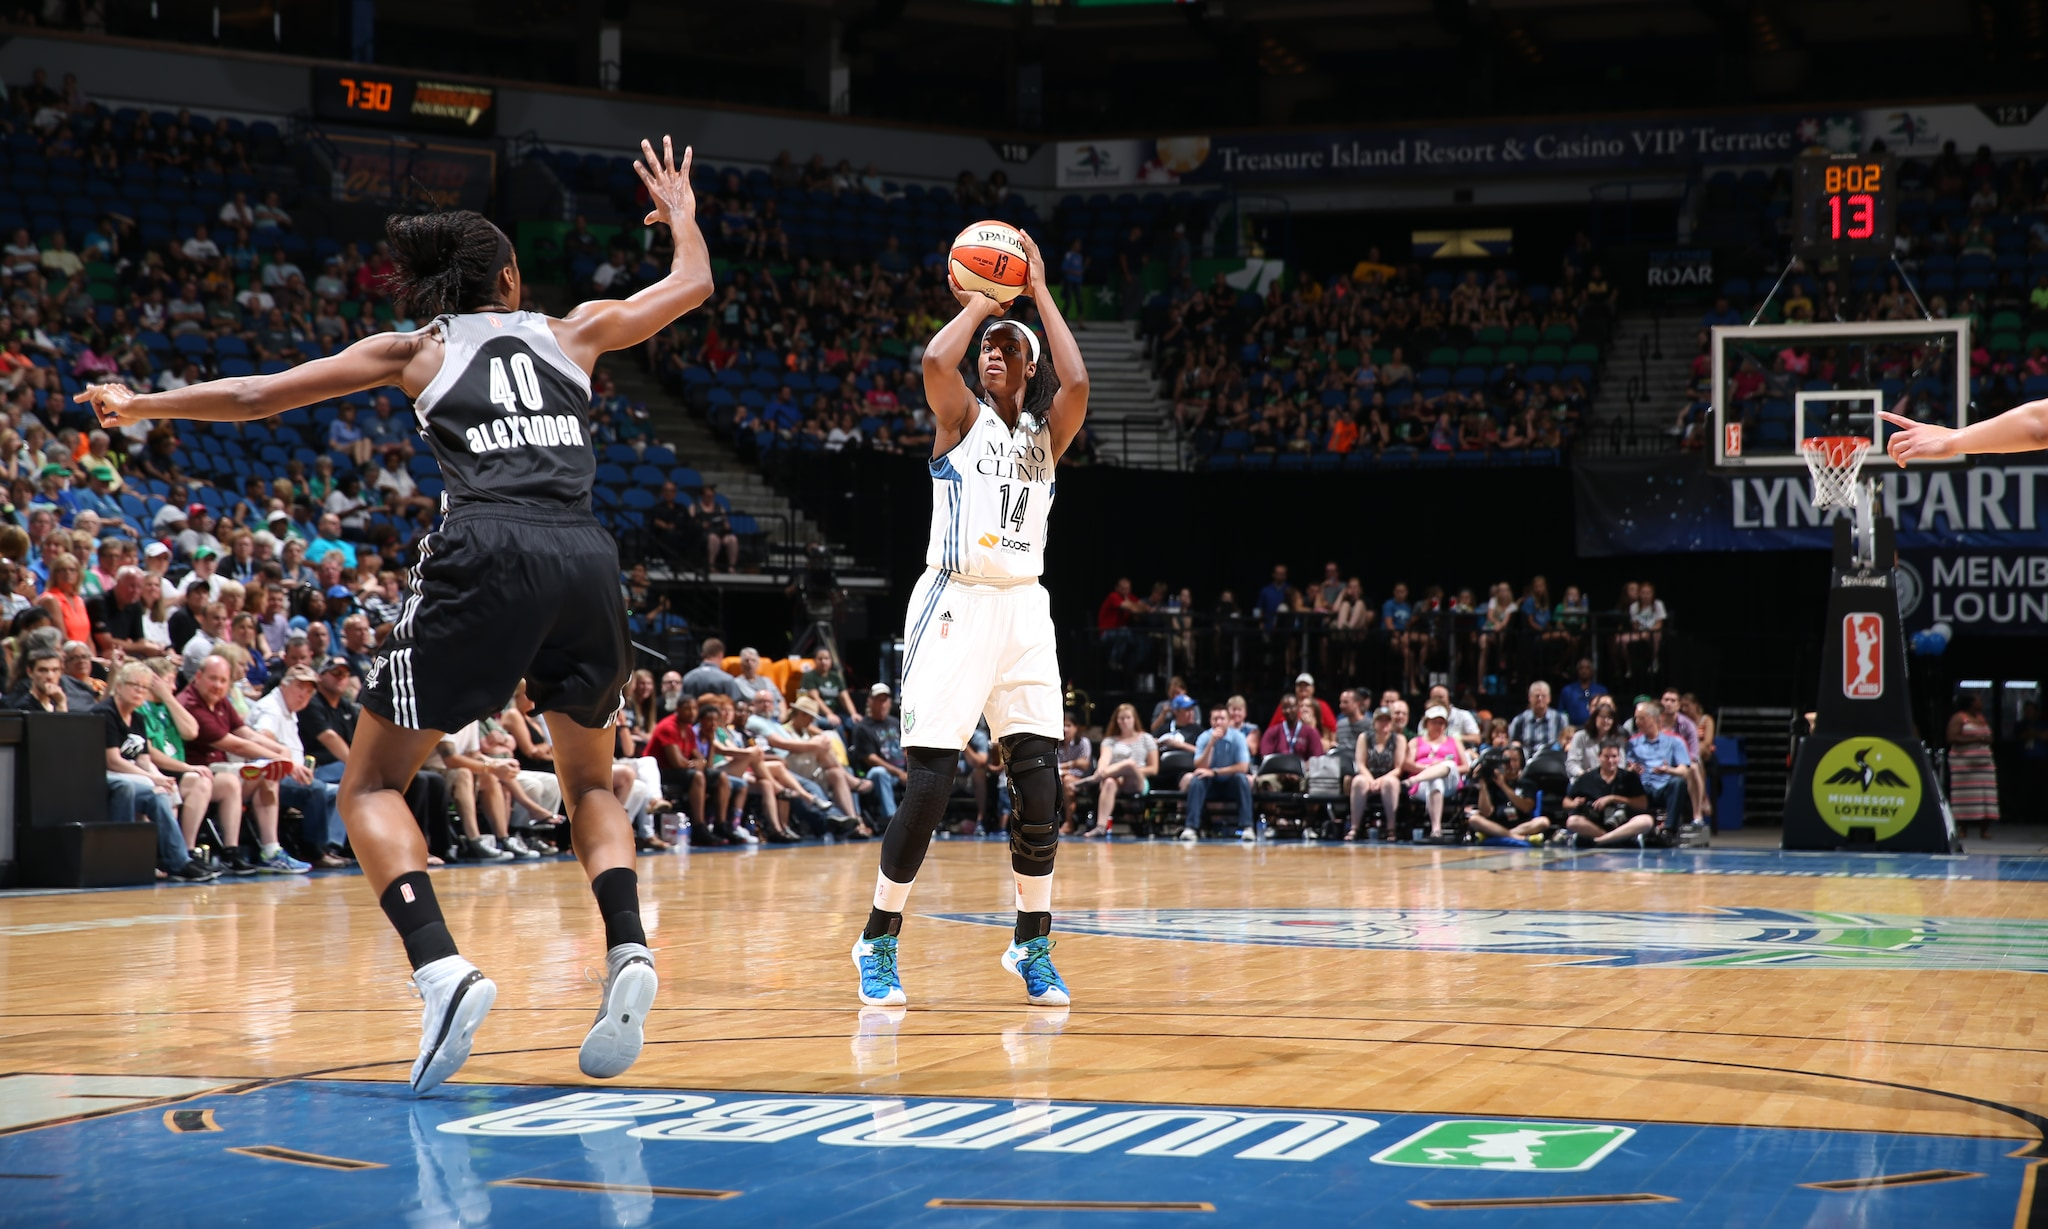 Lynx forward Devereaux Peters was solid once again off the bench. Peters finished with five points, six rebounds and three blocked shots to help fuel the Lynx to a victory.